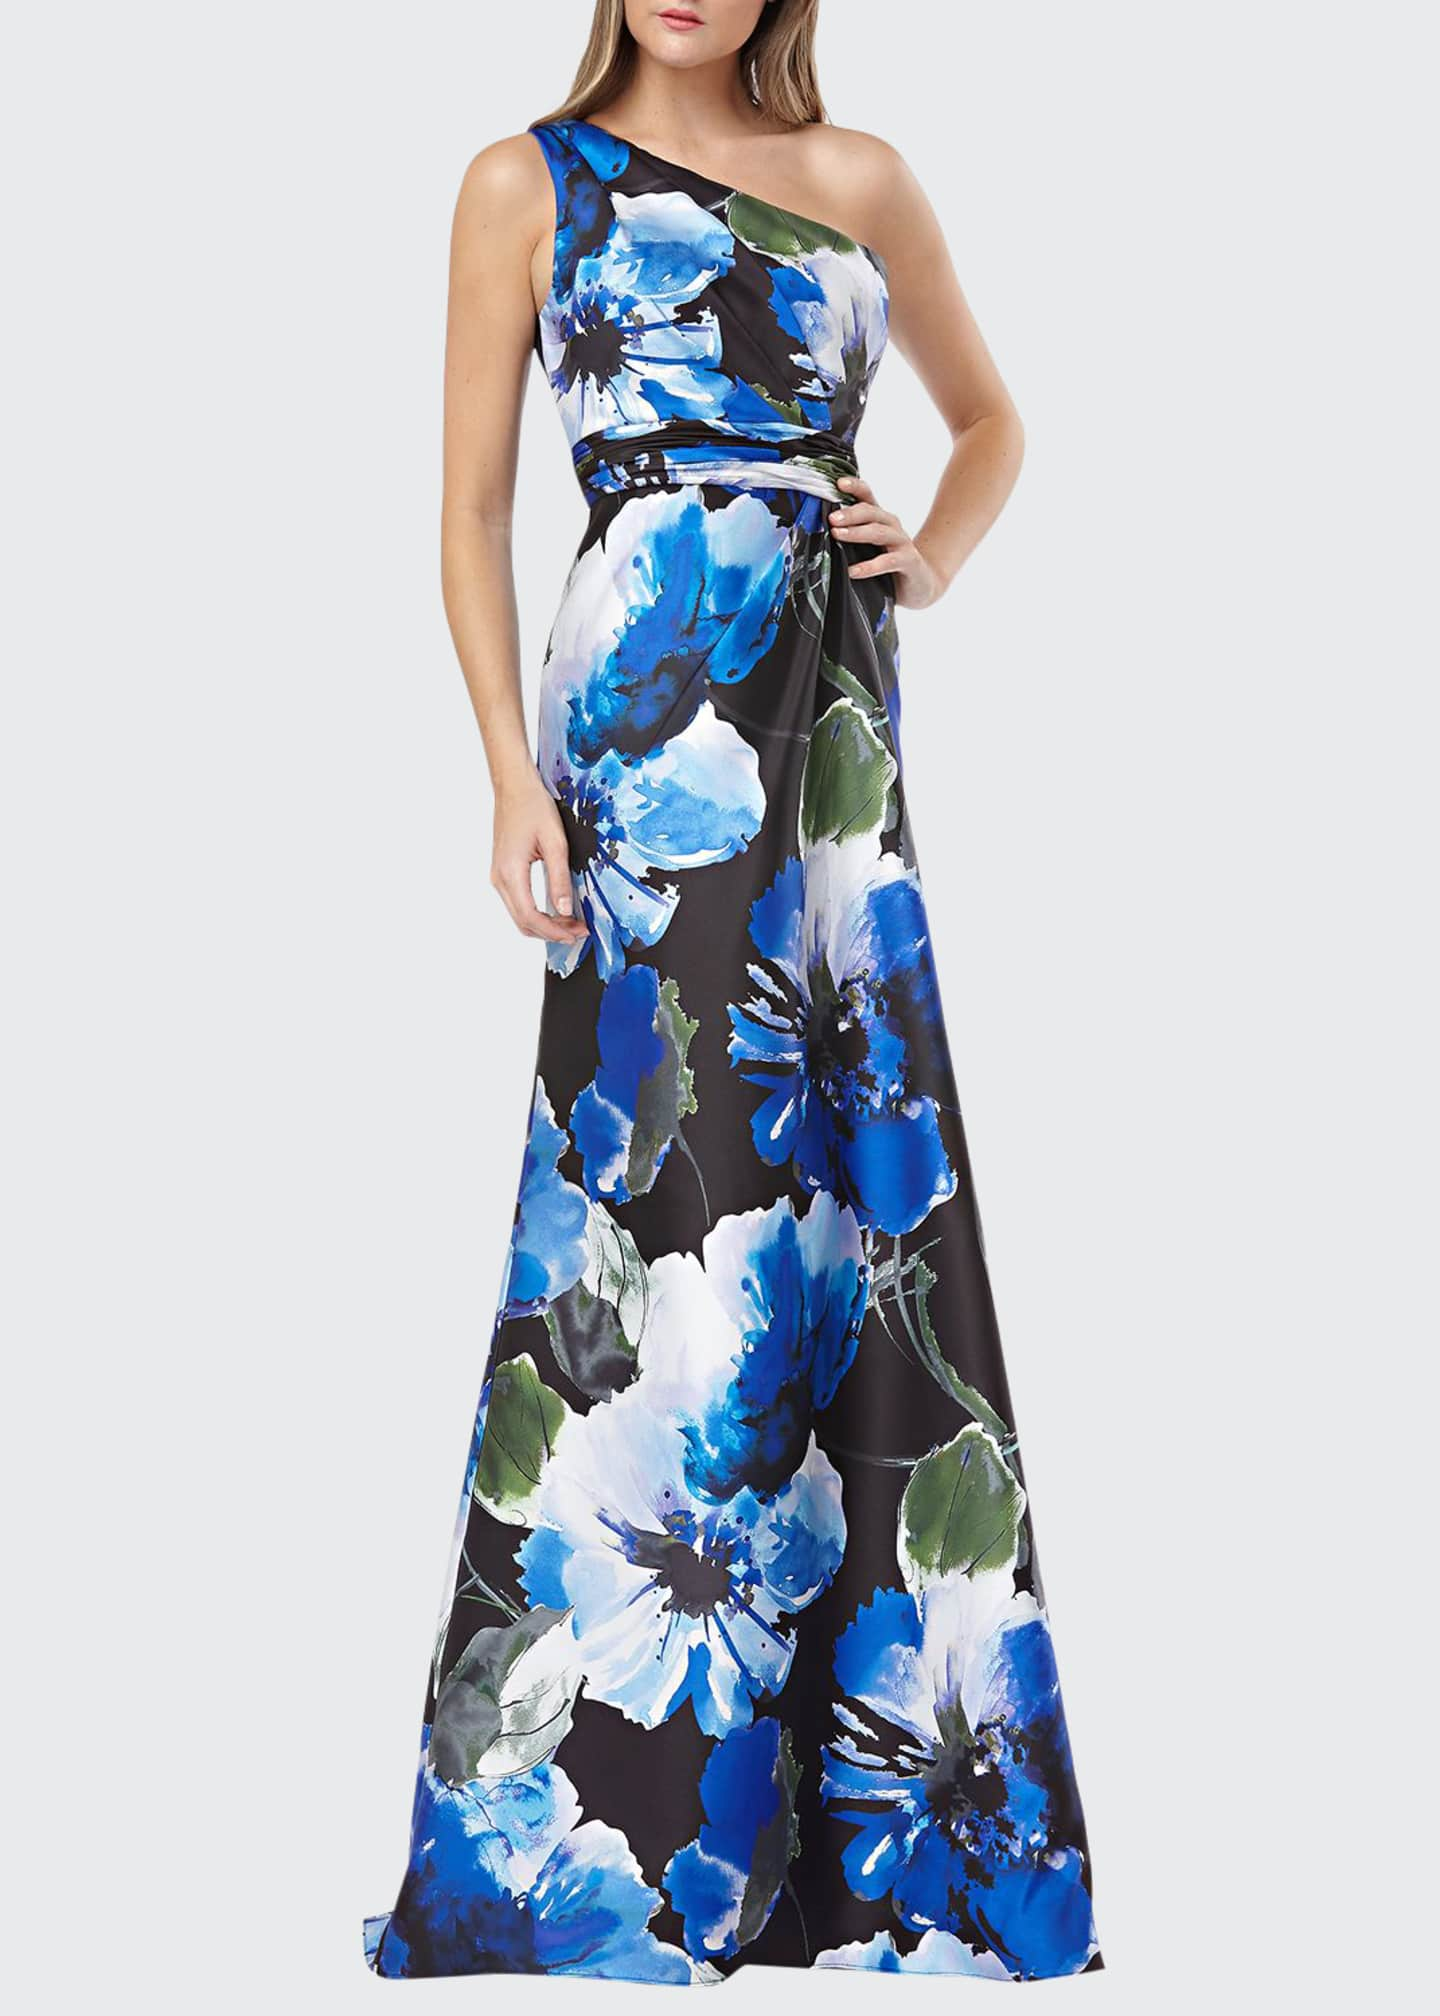 Carmen Marc Valvo Infusion Floral-Printed One-Shoulder Mikado